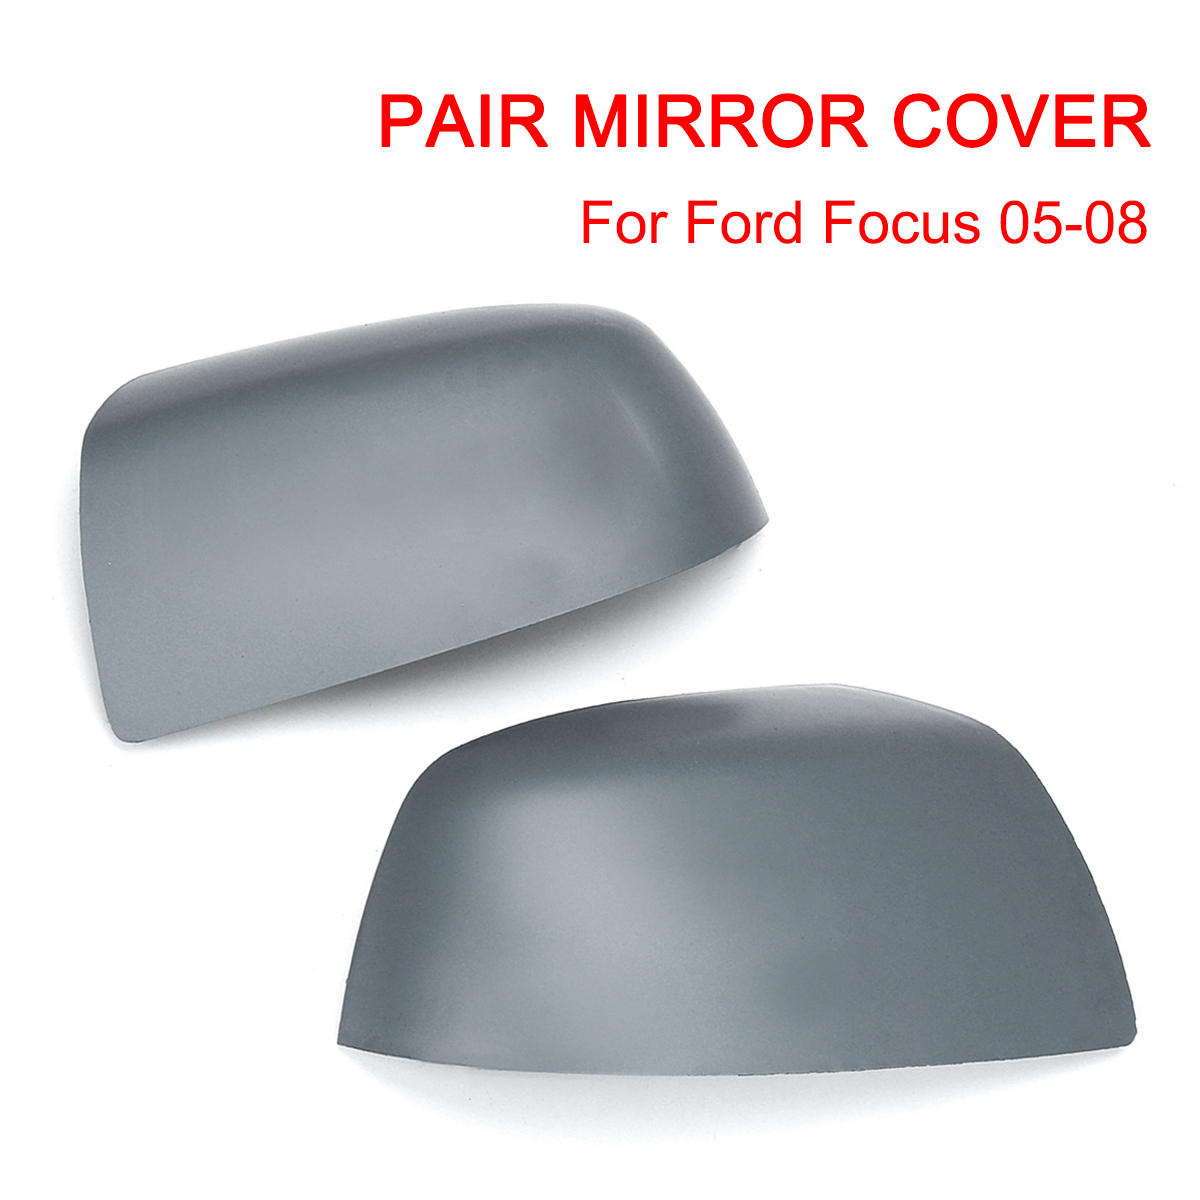 Car Left & Right Rear View <font><b>Side</b></font> <font><b>Mirror</b></font> Cover Wing Cap For <font><b>Ford</b></font> for <font><b>Focus</b></font> 2005 2006 2007 2008 image